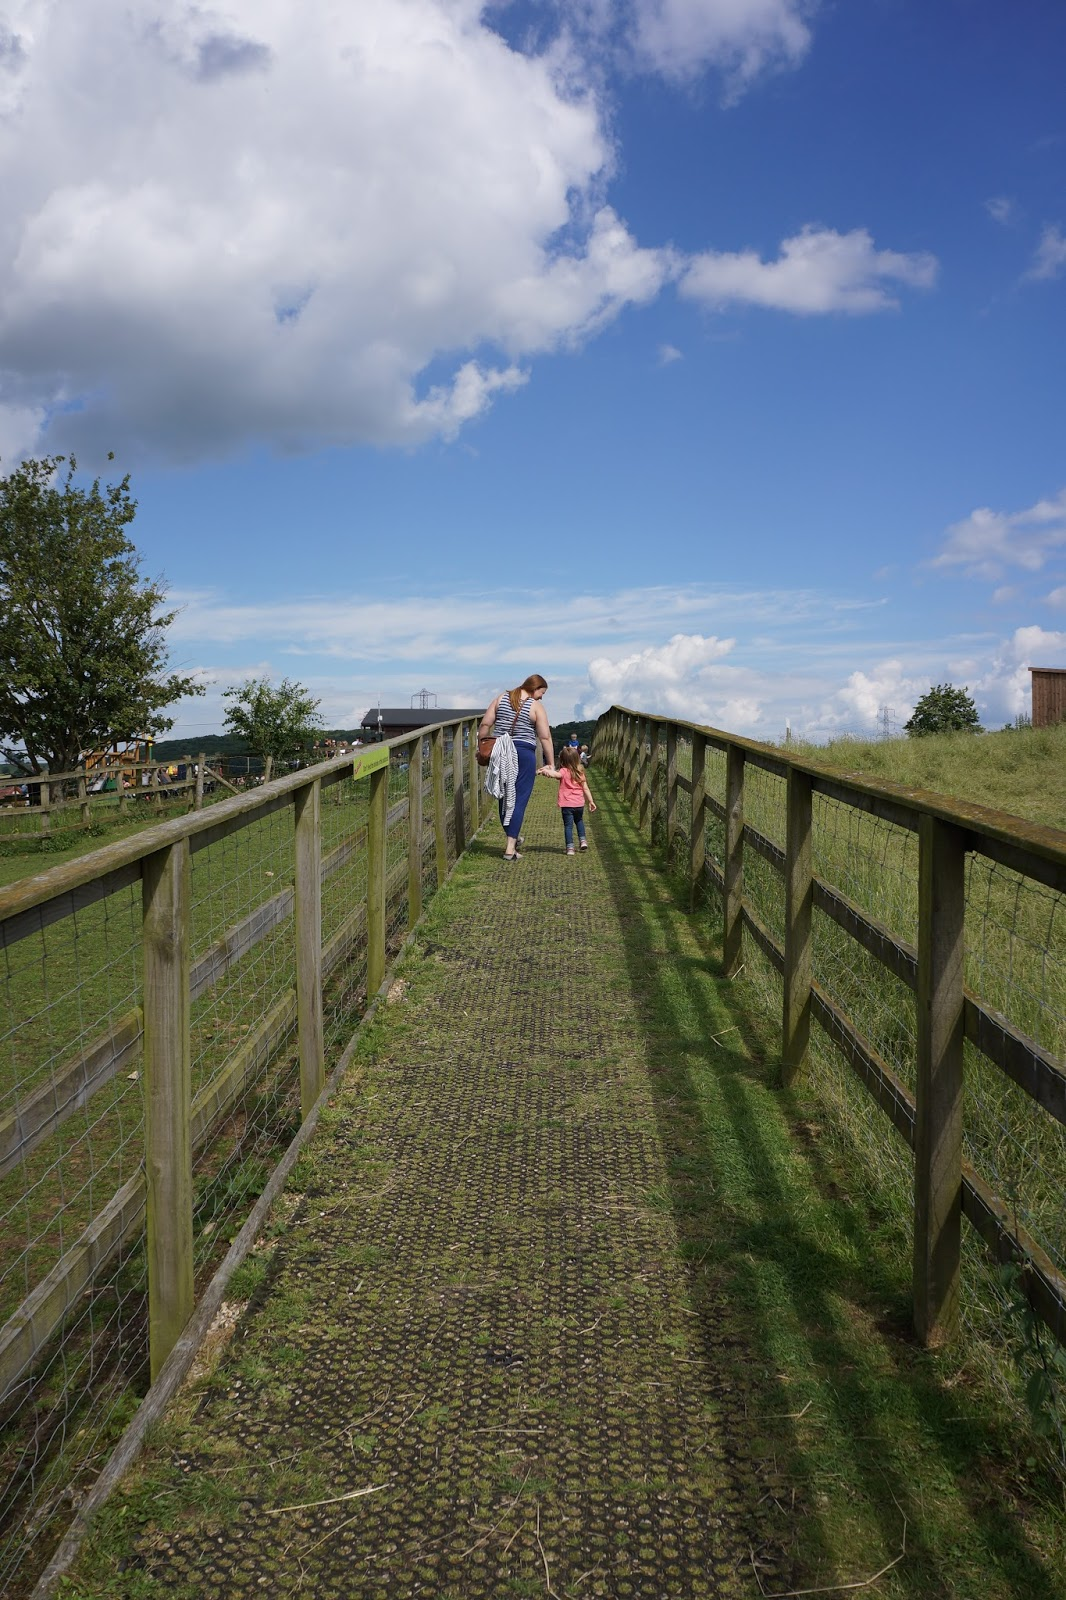 mum walking with toddler at lee valley park farm